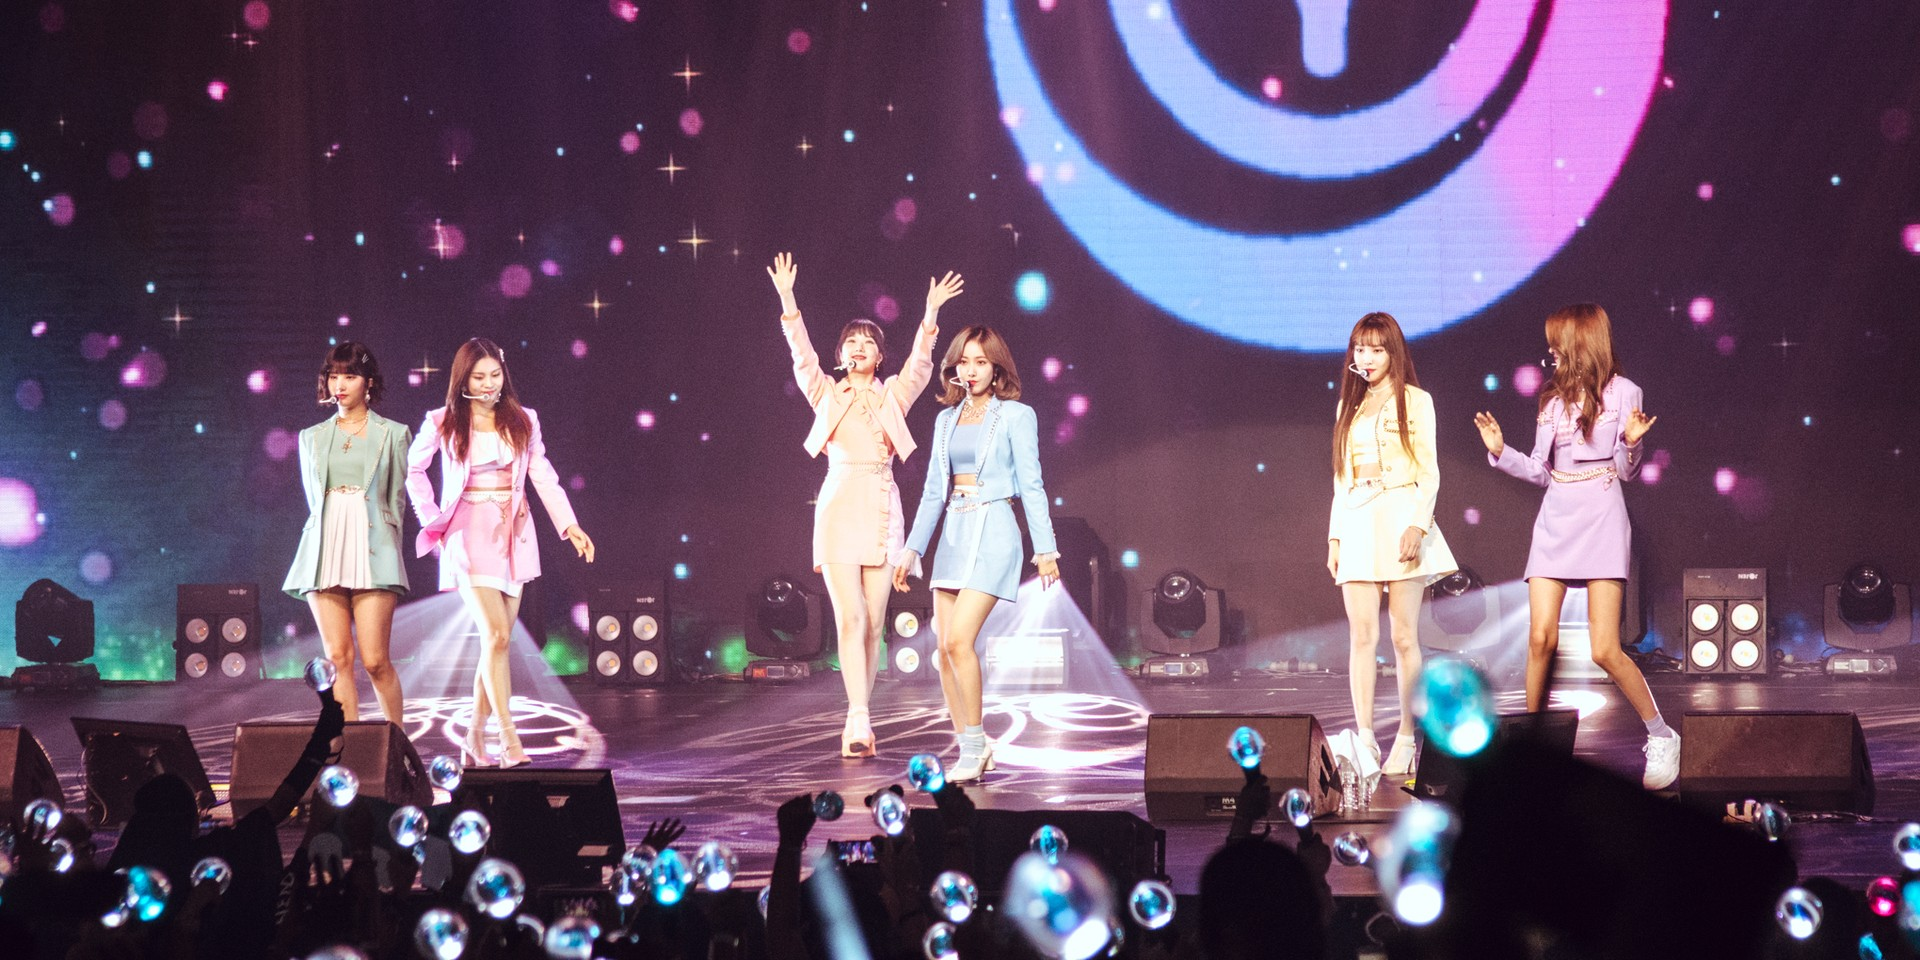 GFRIEND (여자친구) rekindled memories and celebrated love and friendship with Buddies at their Manila show – gig report